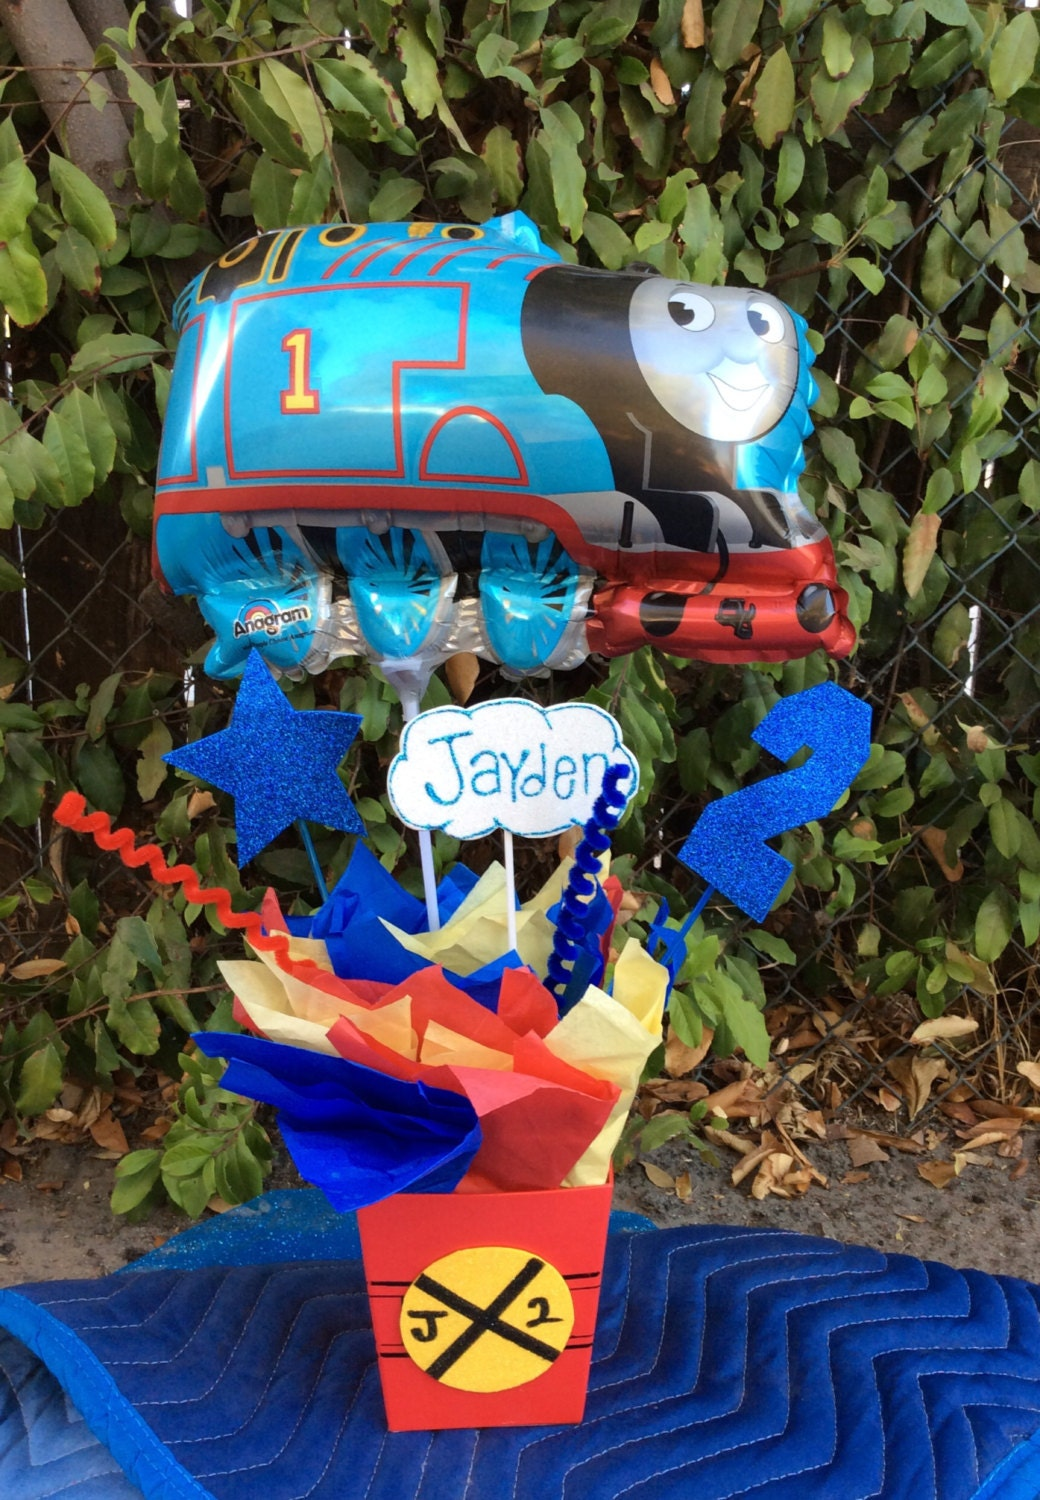 thomas the train birthday party centerpiece. Black Bedroom Furniture Sets. Home Design Ideas